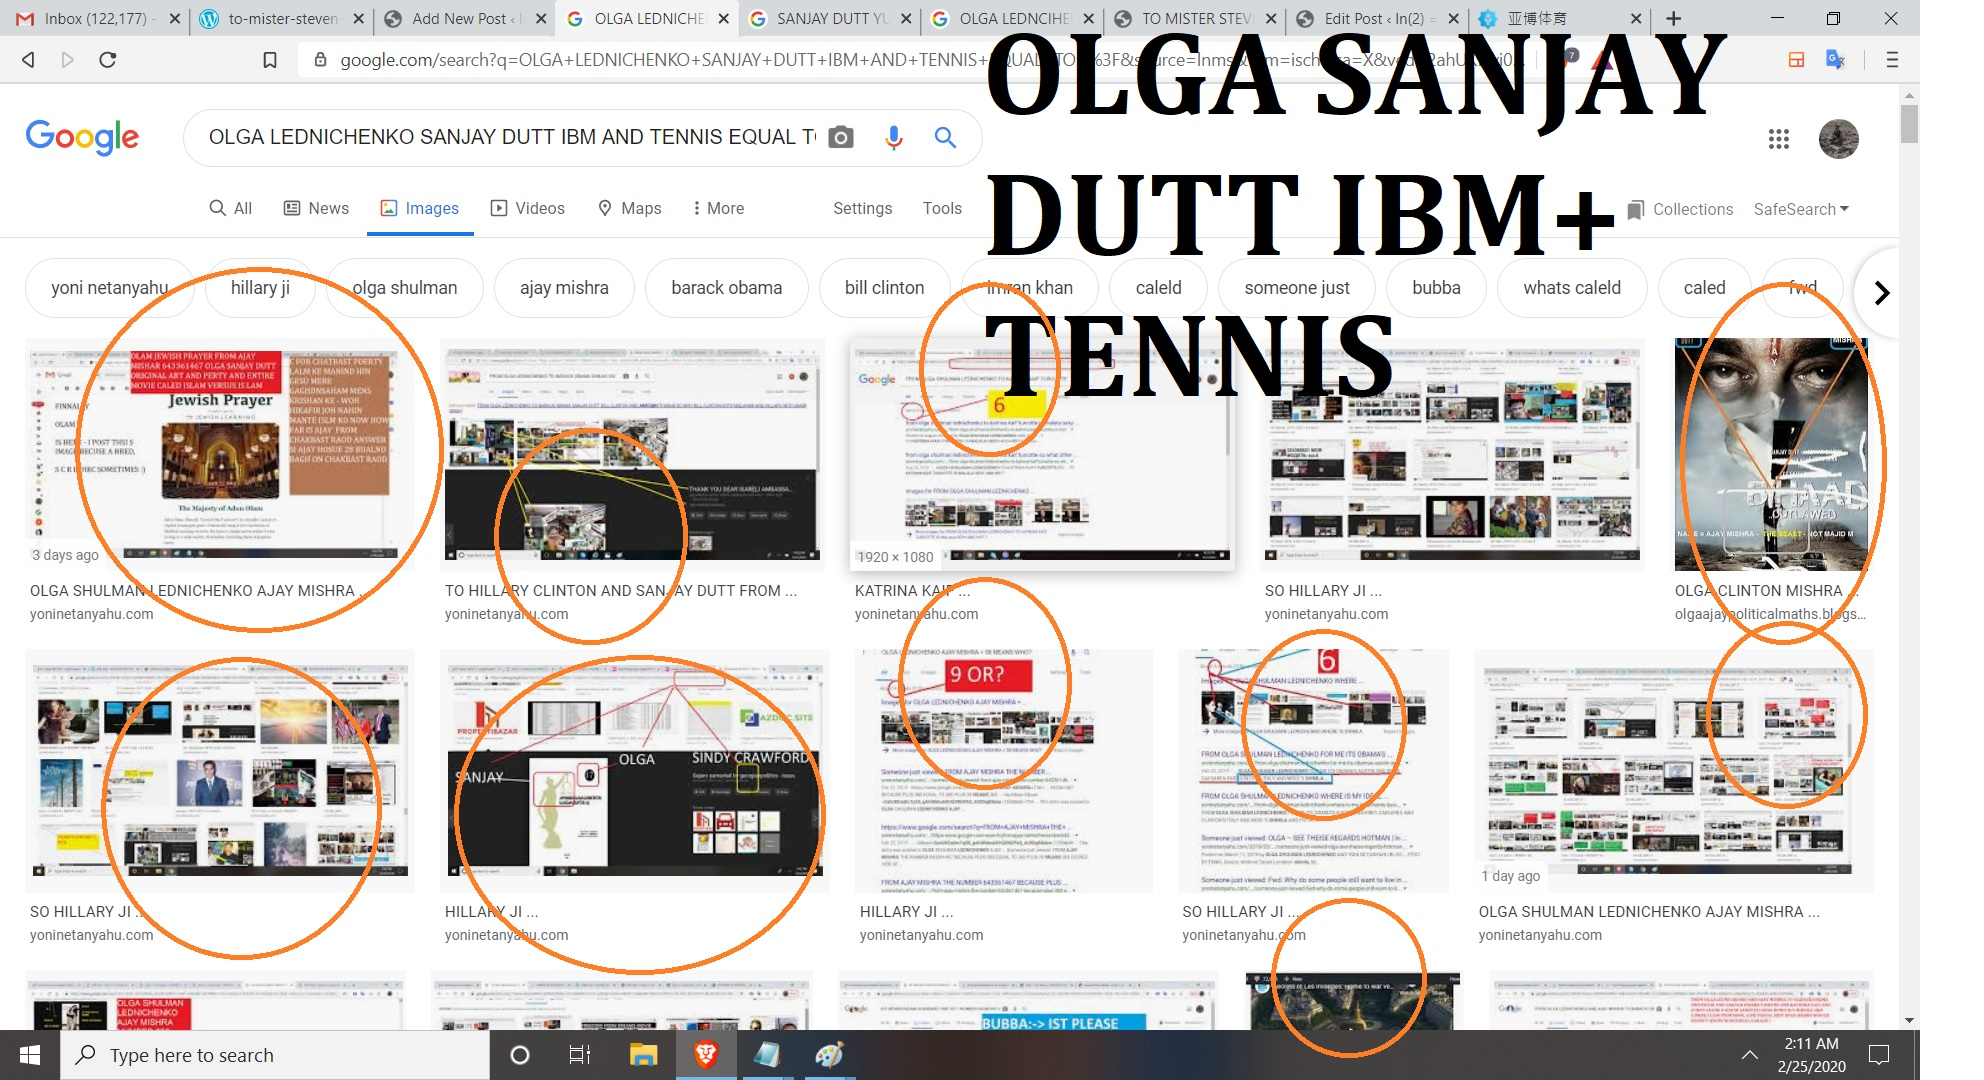 OLGA LEDNCIHENKO SANJAY DUTT IBM AND TENNIS --